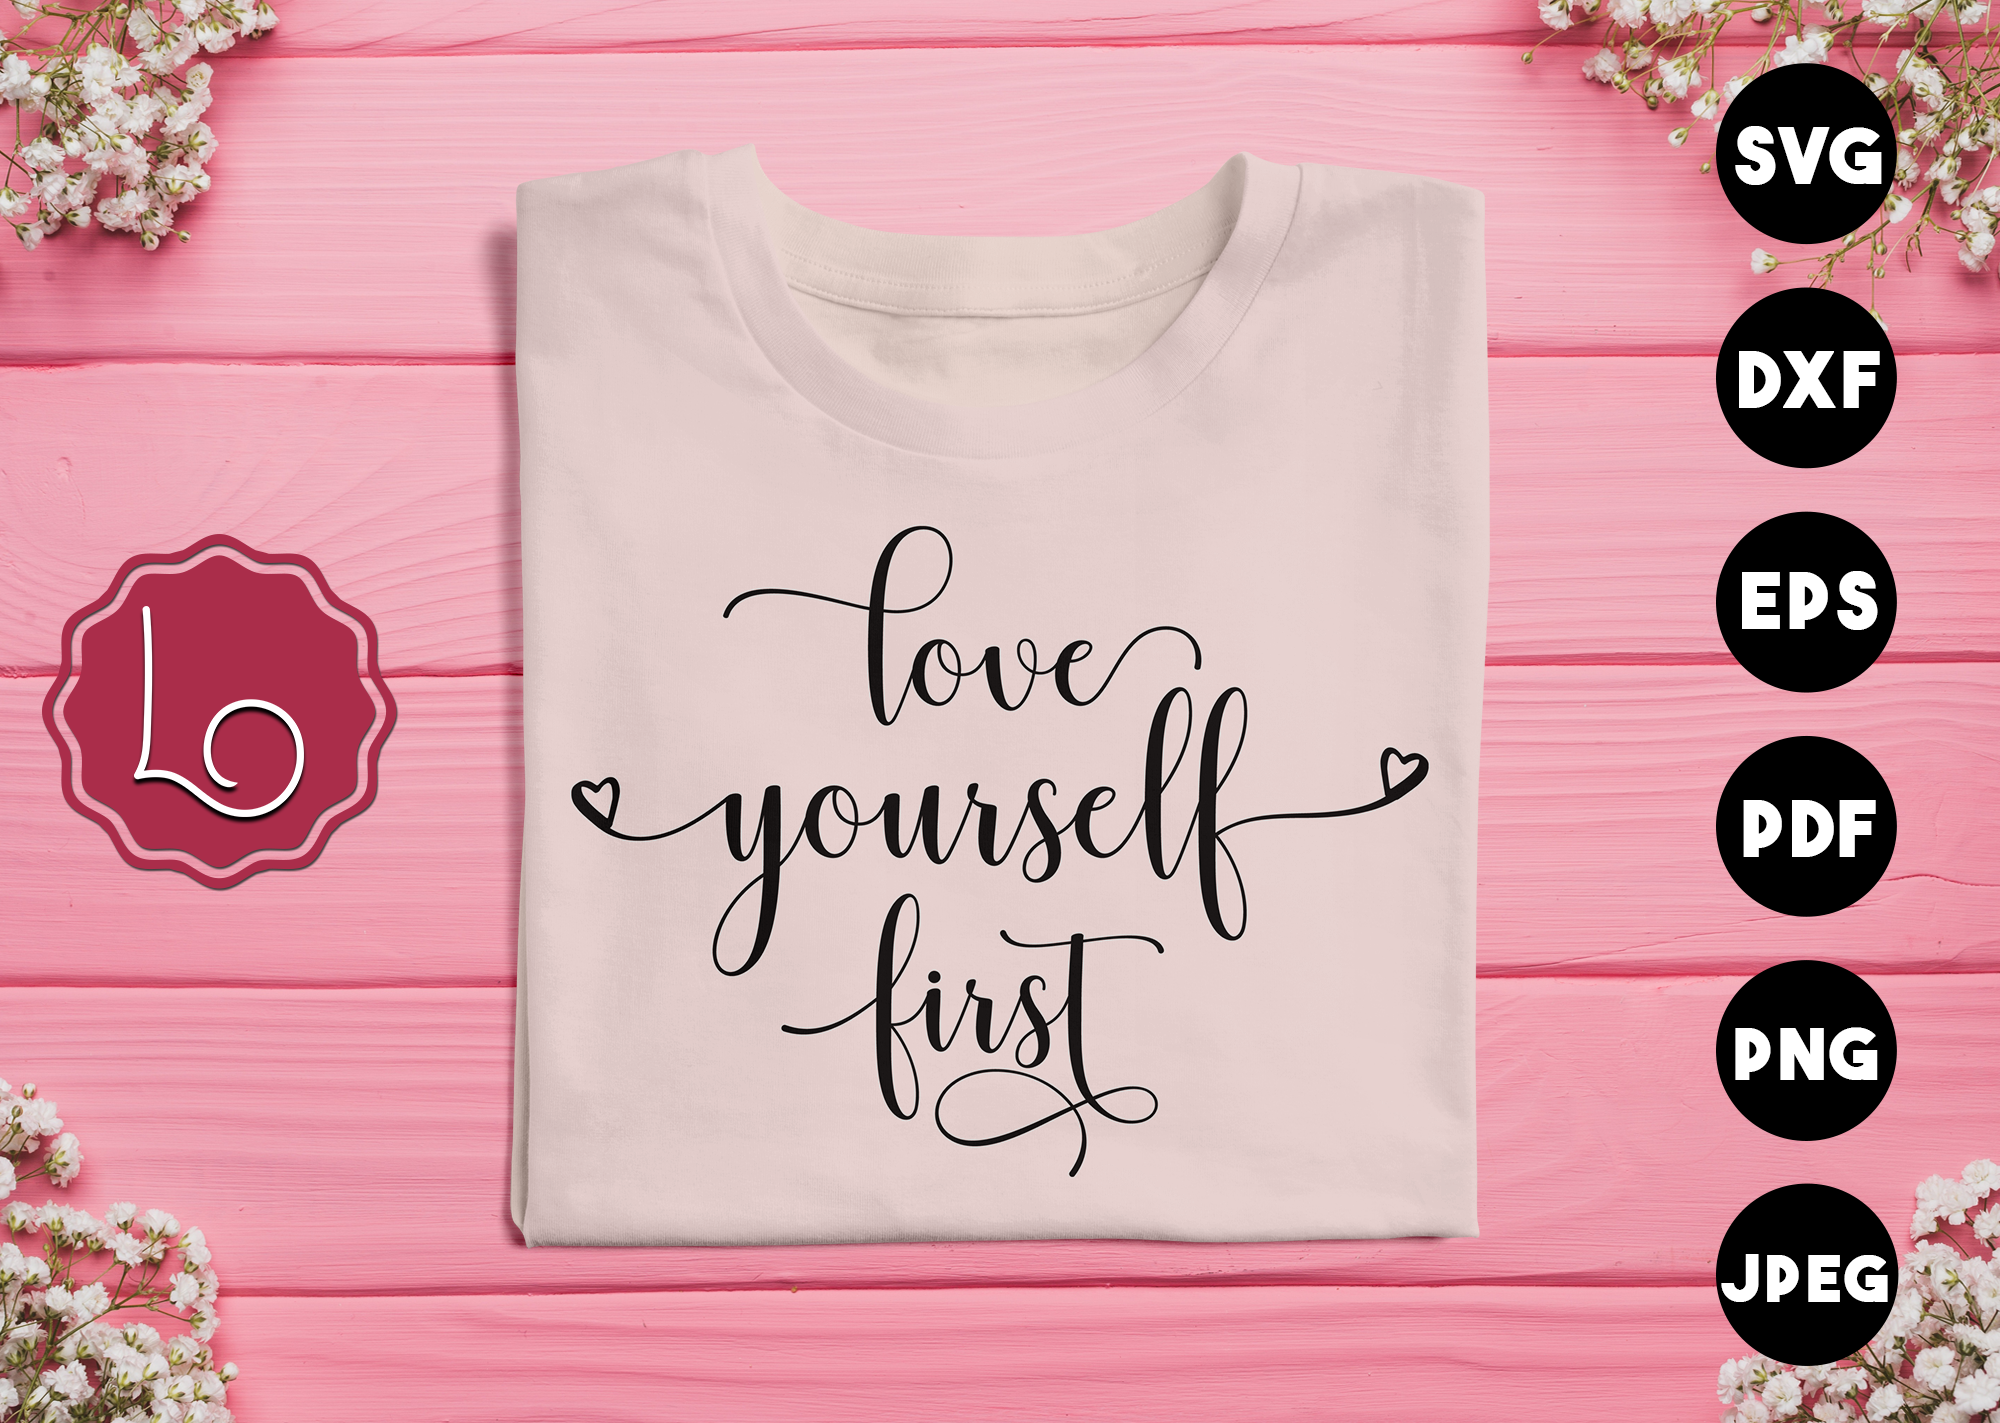 Download Free Love Yourself First Graphic By La Oliveira Creative Fabrica for Cricut Explore, Silhouette and other cutting machines.